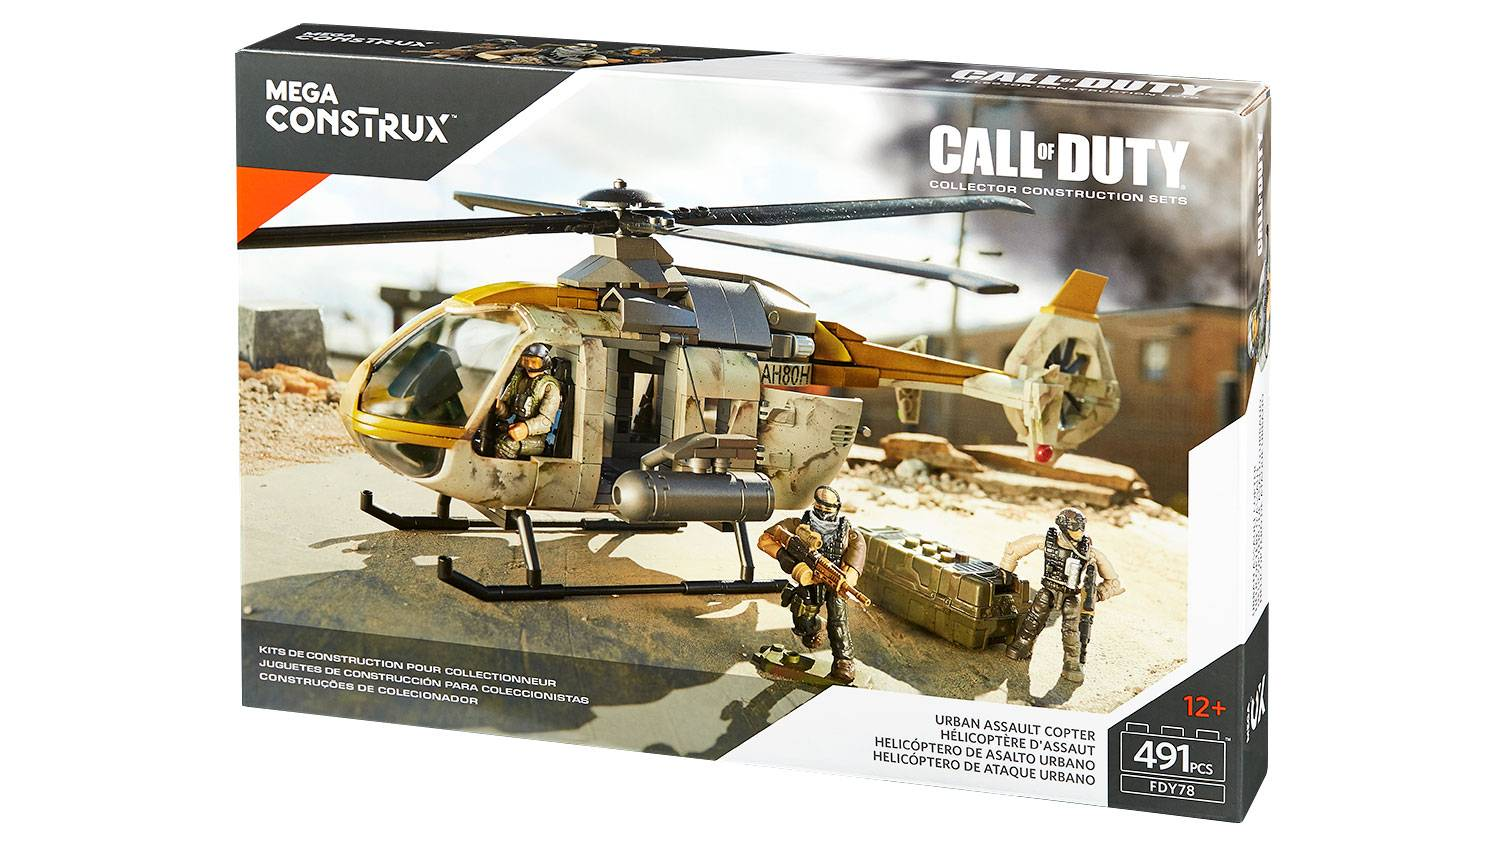 mega bloks call of duty helicopter with Urban Assault Copter Fdy78 on Watch also Watch together with Mega Bloks Call Of Duty 6859 Signature as well Breaking V 22 And Spmagtf Cr Proving additionally Urban Assault Copter Fdy78.